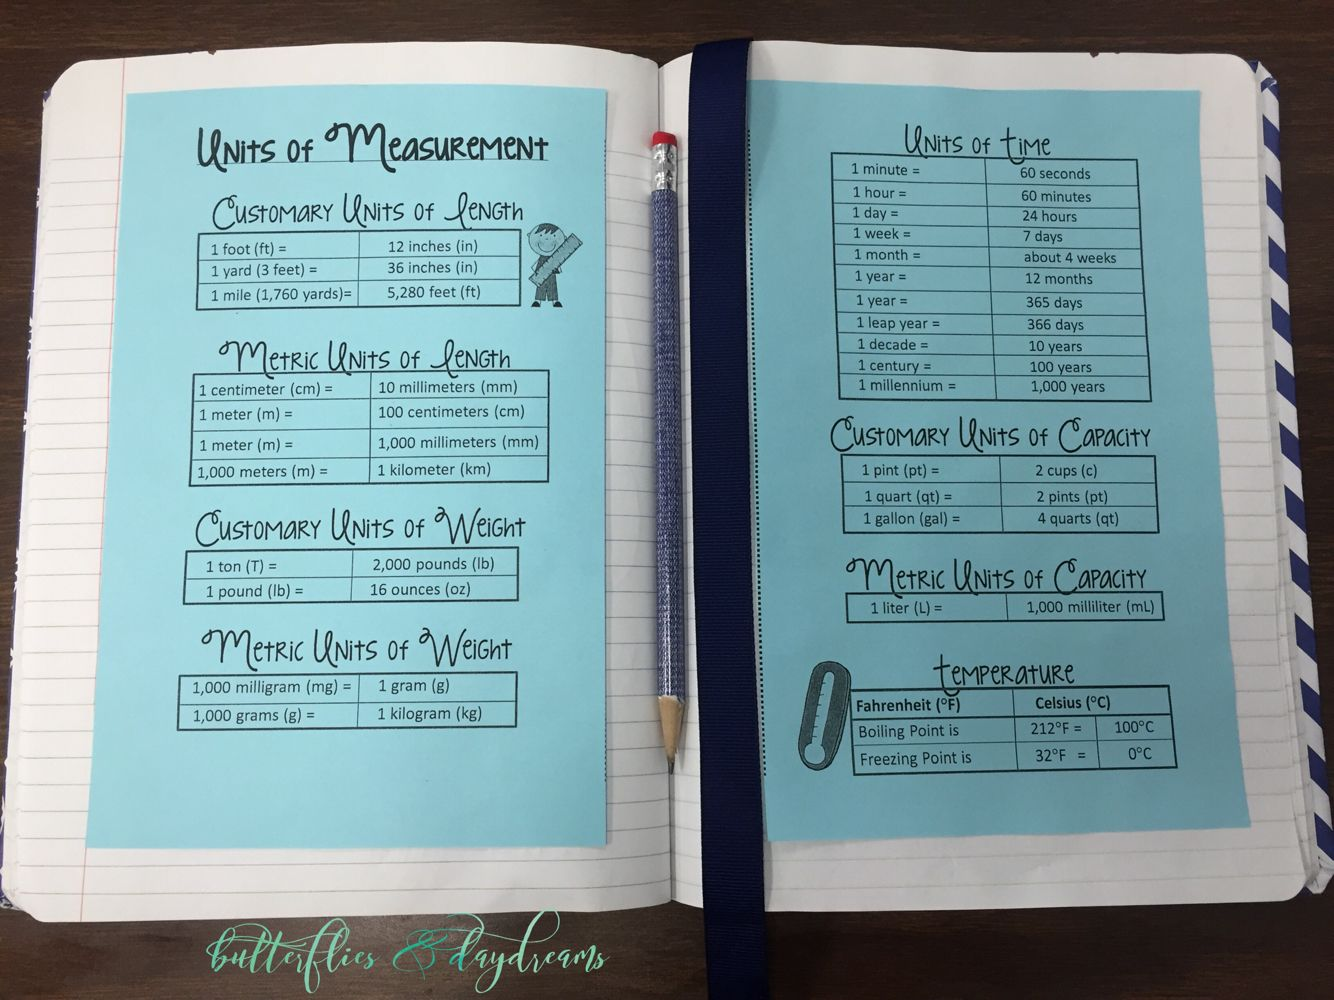 Units of Measurement Conversion Reference Guide | Math notebooks ...